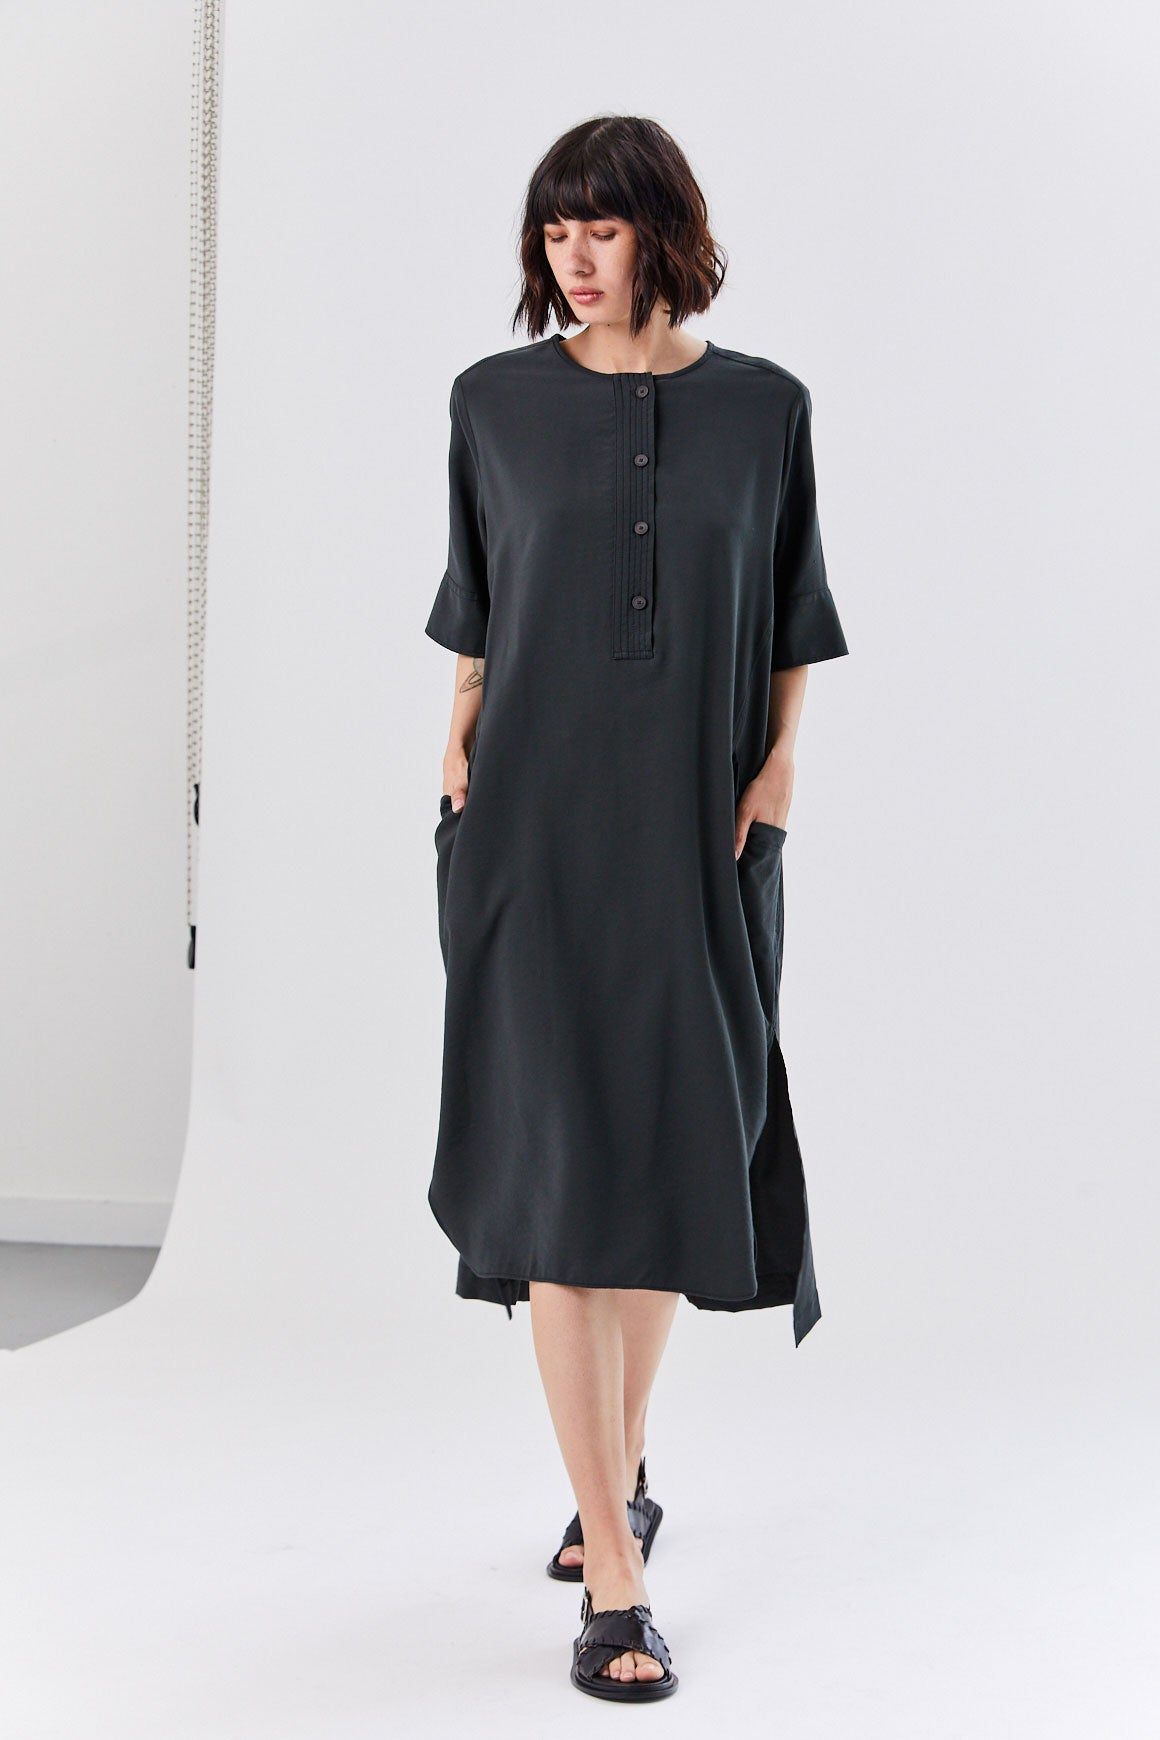 Hope - Row Dress, Faded Black